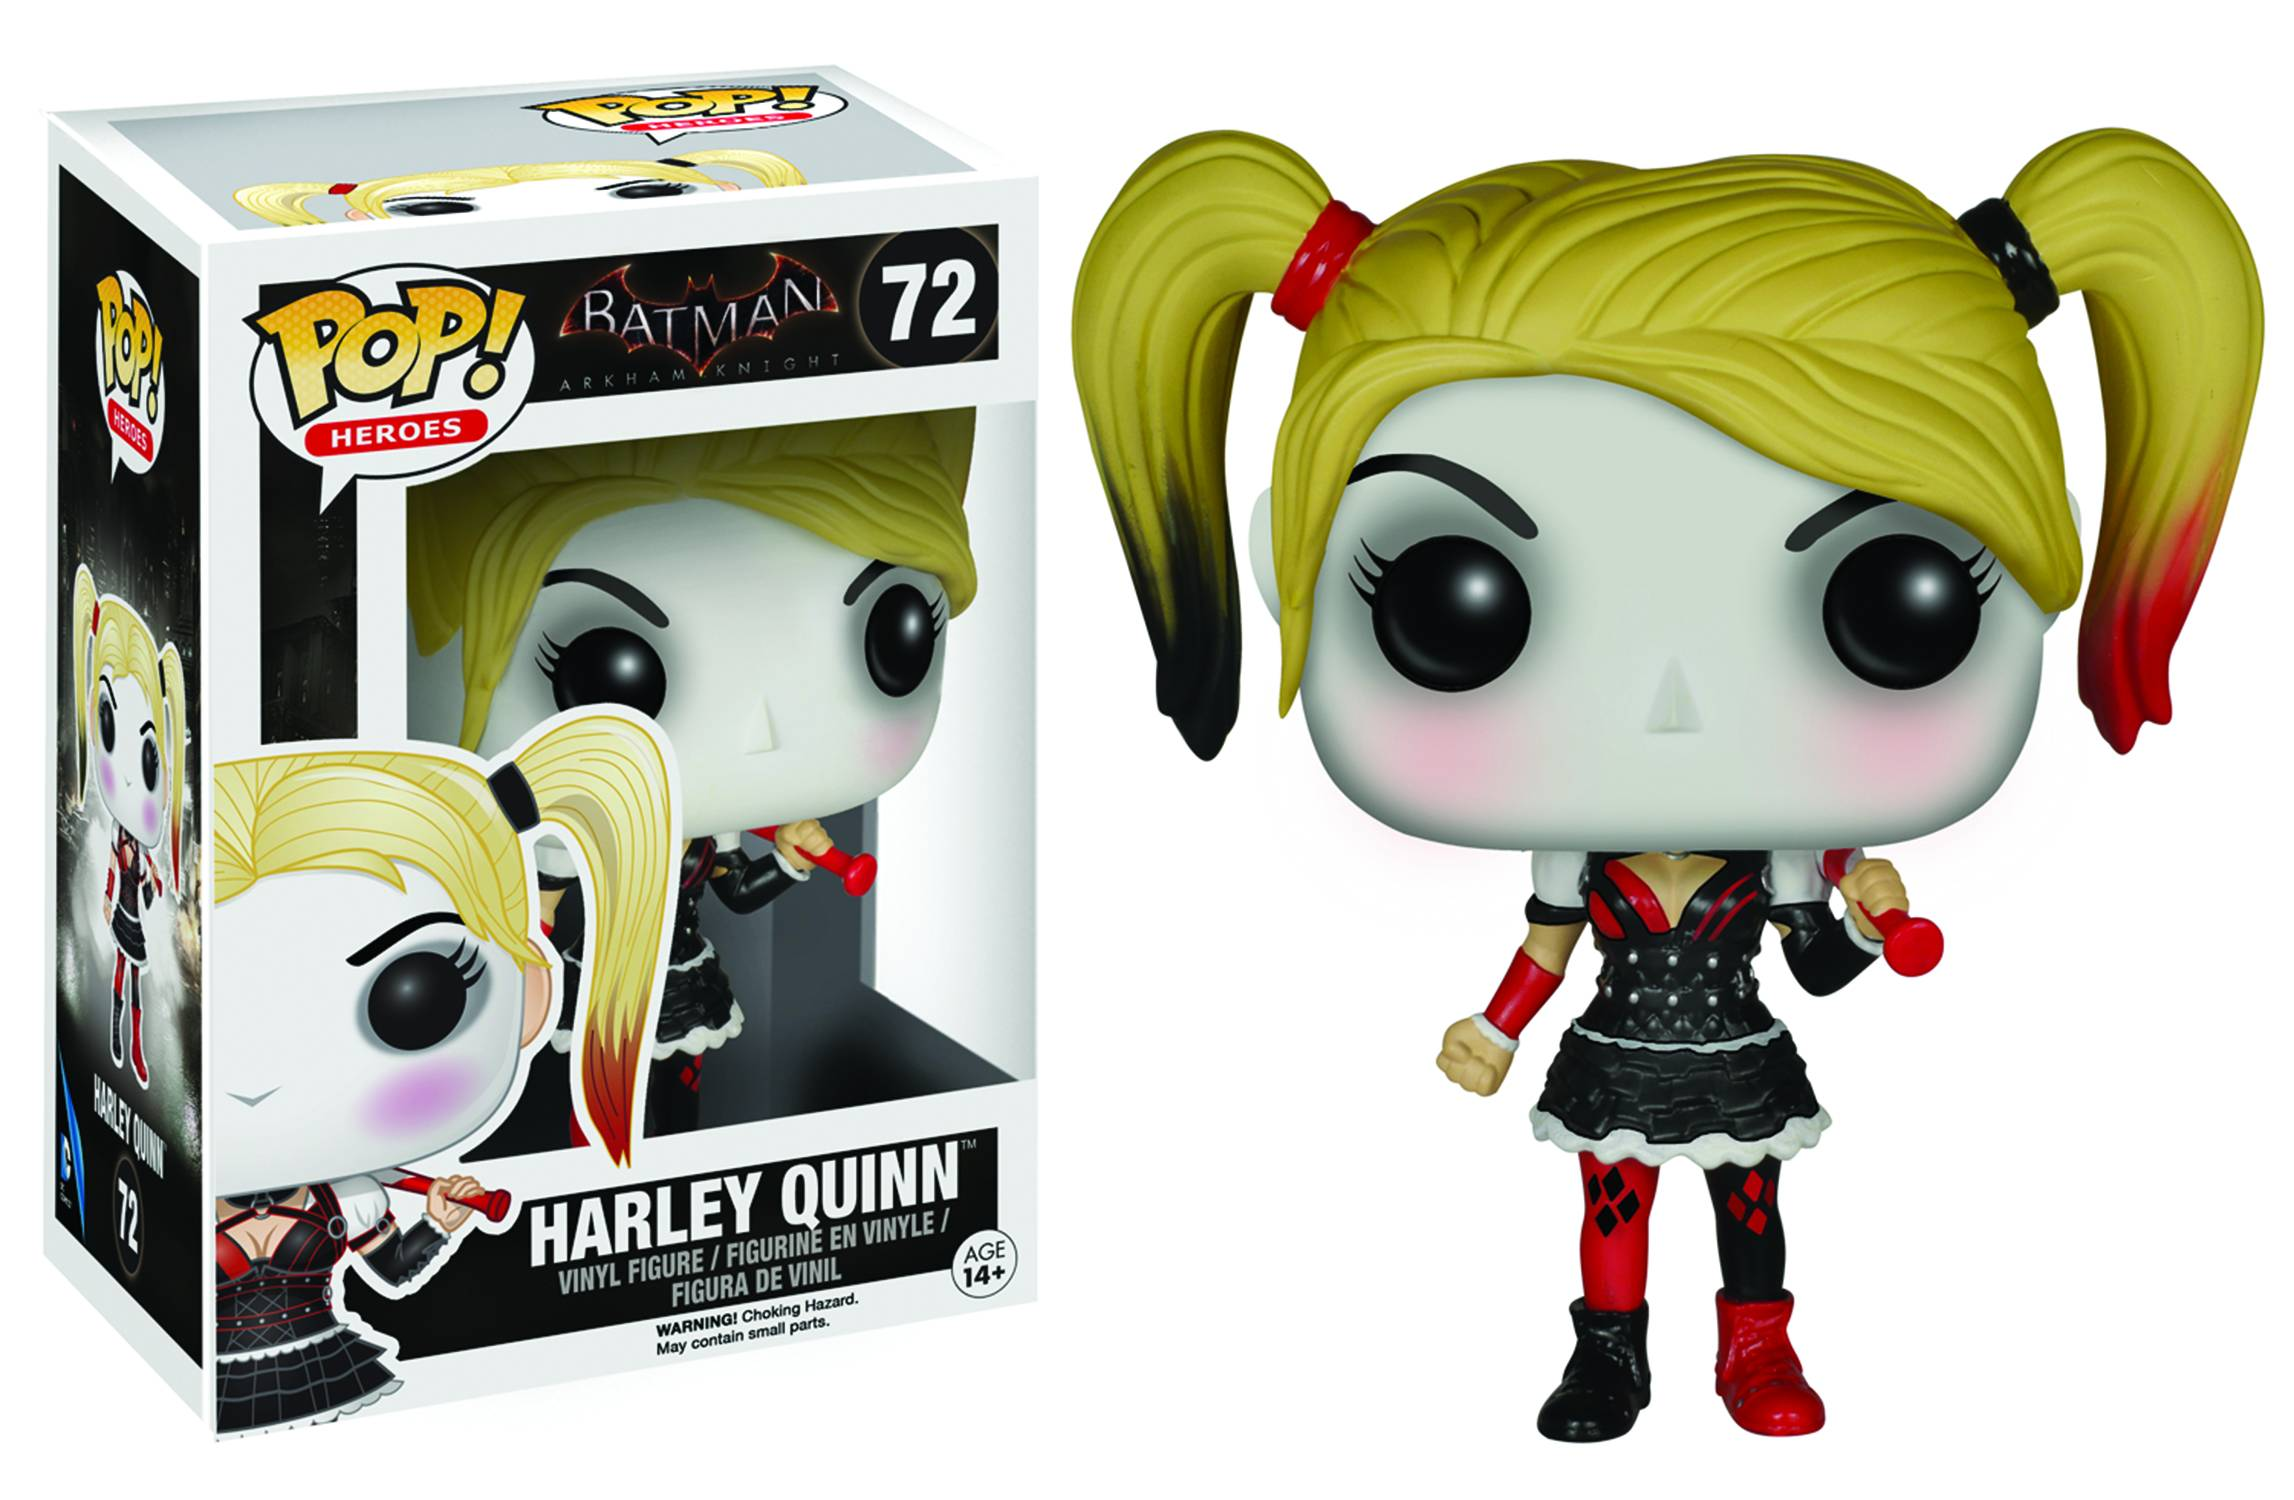 BATMAN ARKHAM KNIGHT - BOBBLE HEAD POP N° 72 - HARLEY QUINN